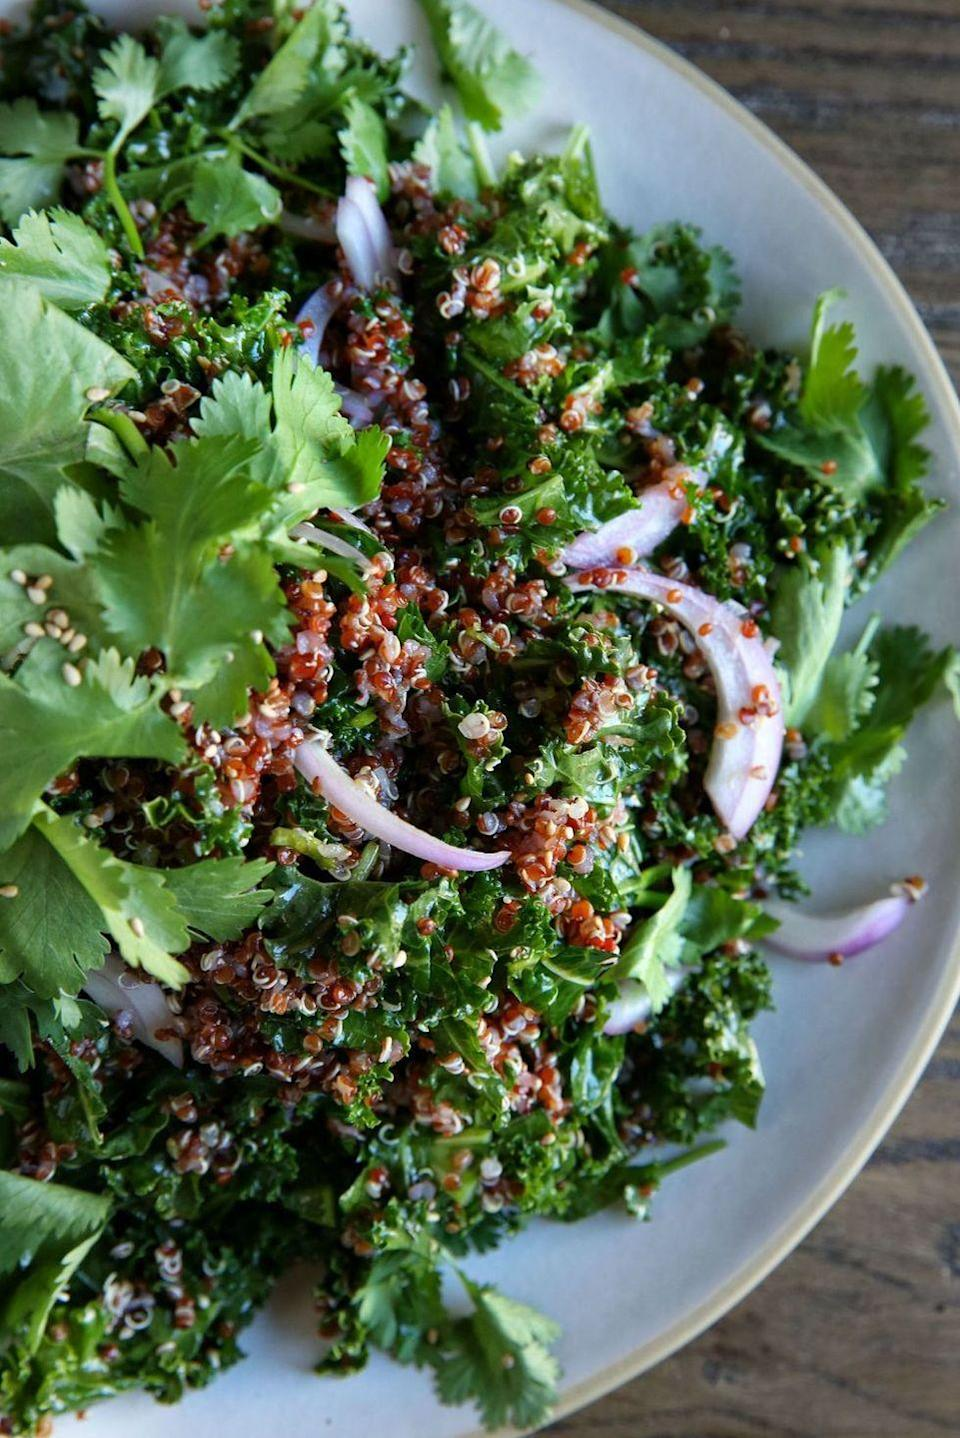 """<p>The tangy dressing on this superfood-packed salad is seriously addictive. You've been warned! </p><p><em><a href=""""https://www.delish.com/cooking/recipe-ideas/recipes/a46443/kale-and-red-quinoa-salad-with-spicy-sesame-dressing-recipe/"""" rel=""""nofollow noopener"""" target=""""_blank"""" data-ylk=""""slk:Get the recipe from Delish »"""" class=""""link rapid-noclick-resp"""">Get the recipe from Delish »</a></em></p>"""